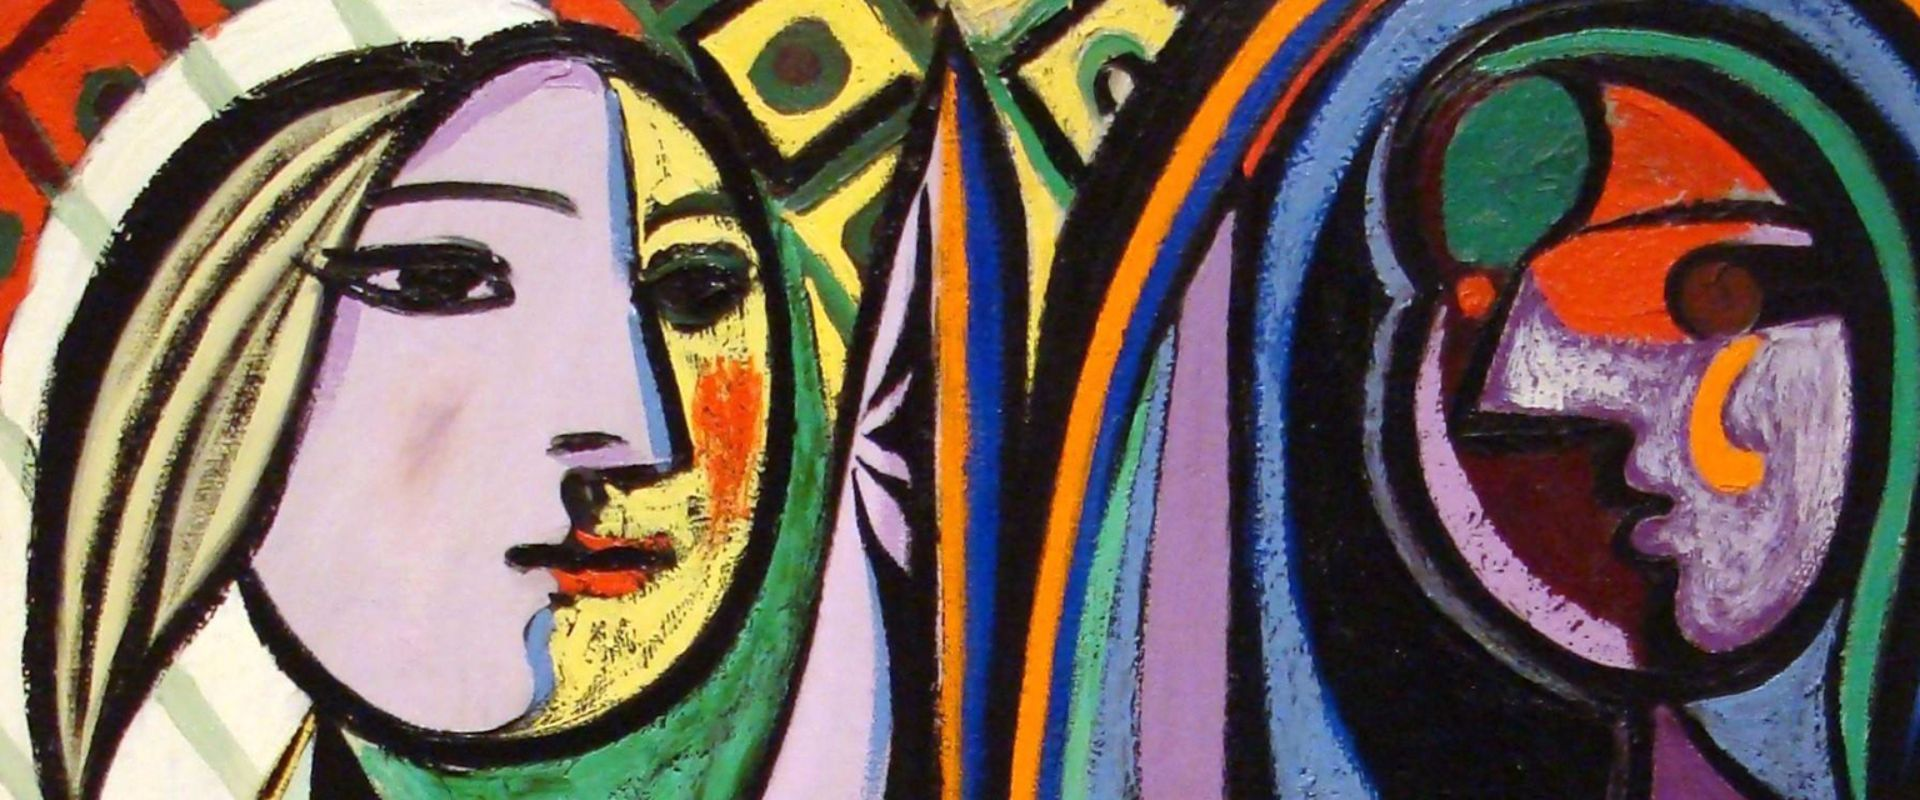 Pablo Picasso Paintings | Buy Posters, Frames, Canvas, Digital Art & Large Size Prints Of The Famous Modern Master's Artworks